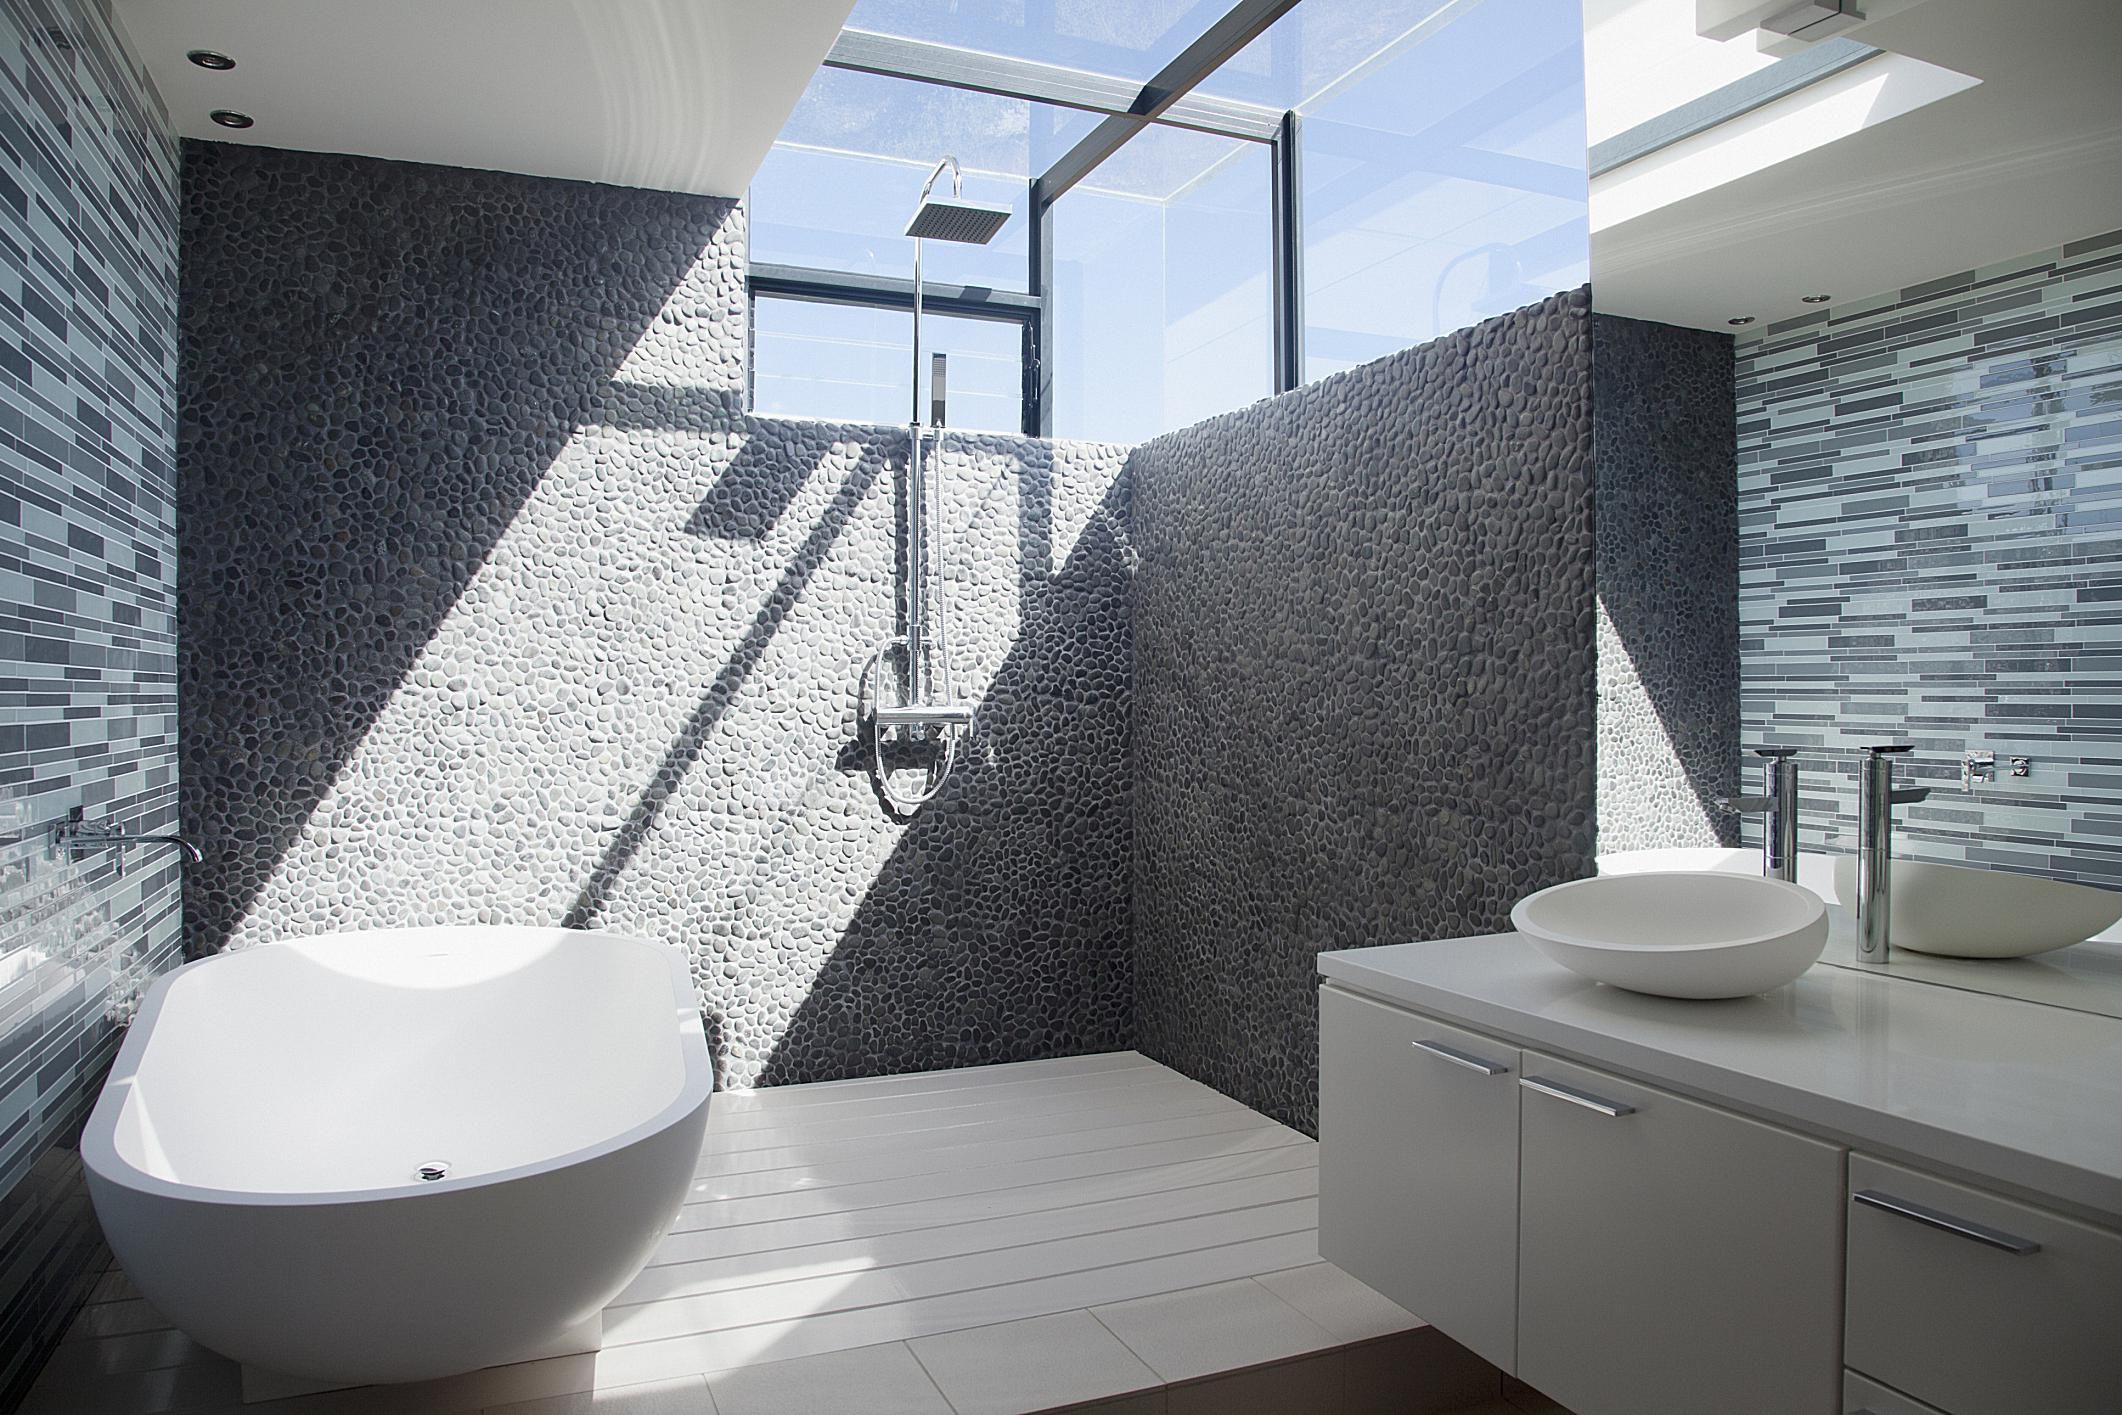 Design Walk In Shower Designs 19 gorgeous showers without doors youll want to switch a walk in shower after reading this bathroom ideas